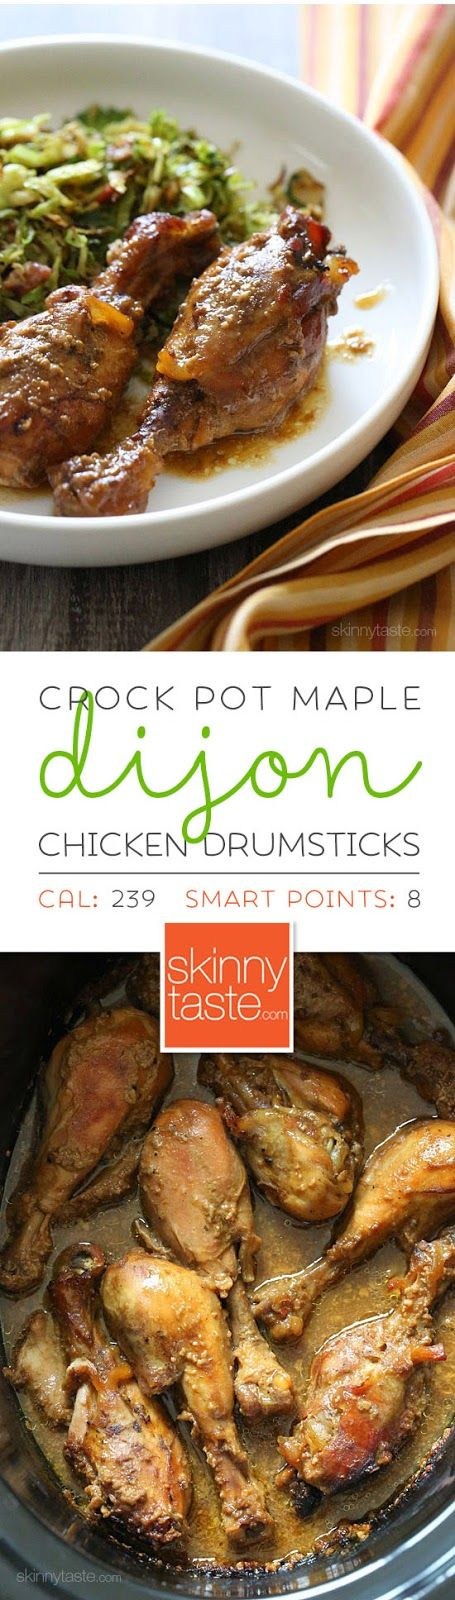 Crock Pot Maple Dijon Chicken Drumsticks – An EASY 6-ingredient chicken dish the whole family will LOVE!